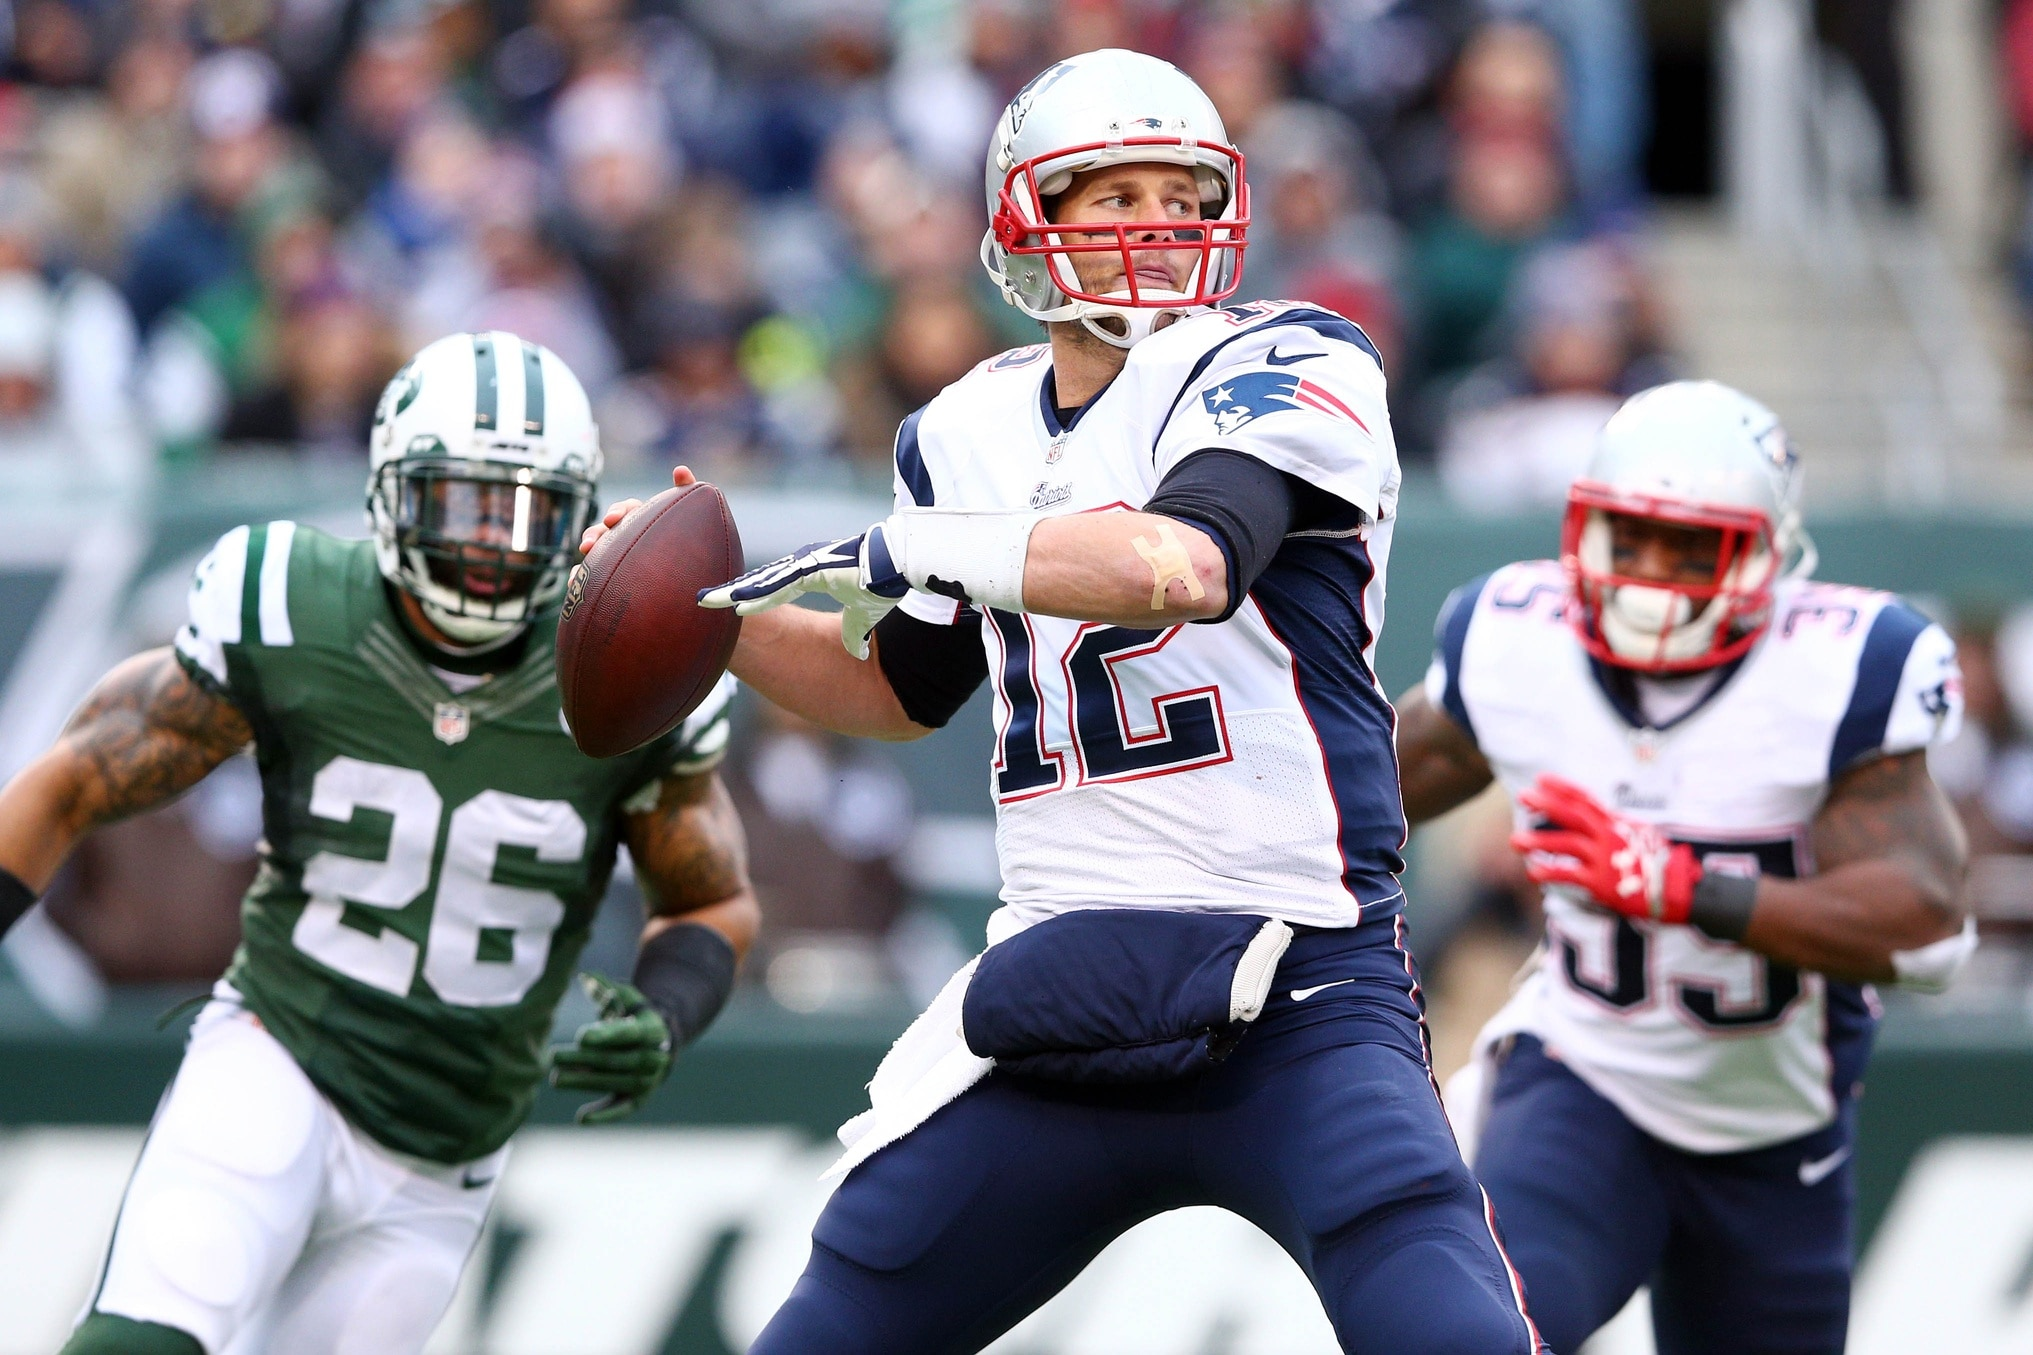 Dec 21, 2014; East Rutherford, NJ, USA; New England Patriots quarterback Tom Brady (12) drops back to pass against the New York Jets during the first quarter at MetLife Stadium. Mandatory Credit: Brad Penner-USA TODAY Sports